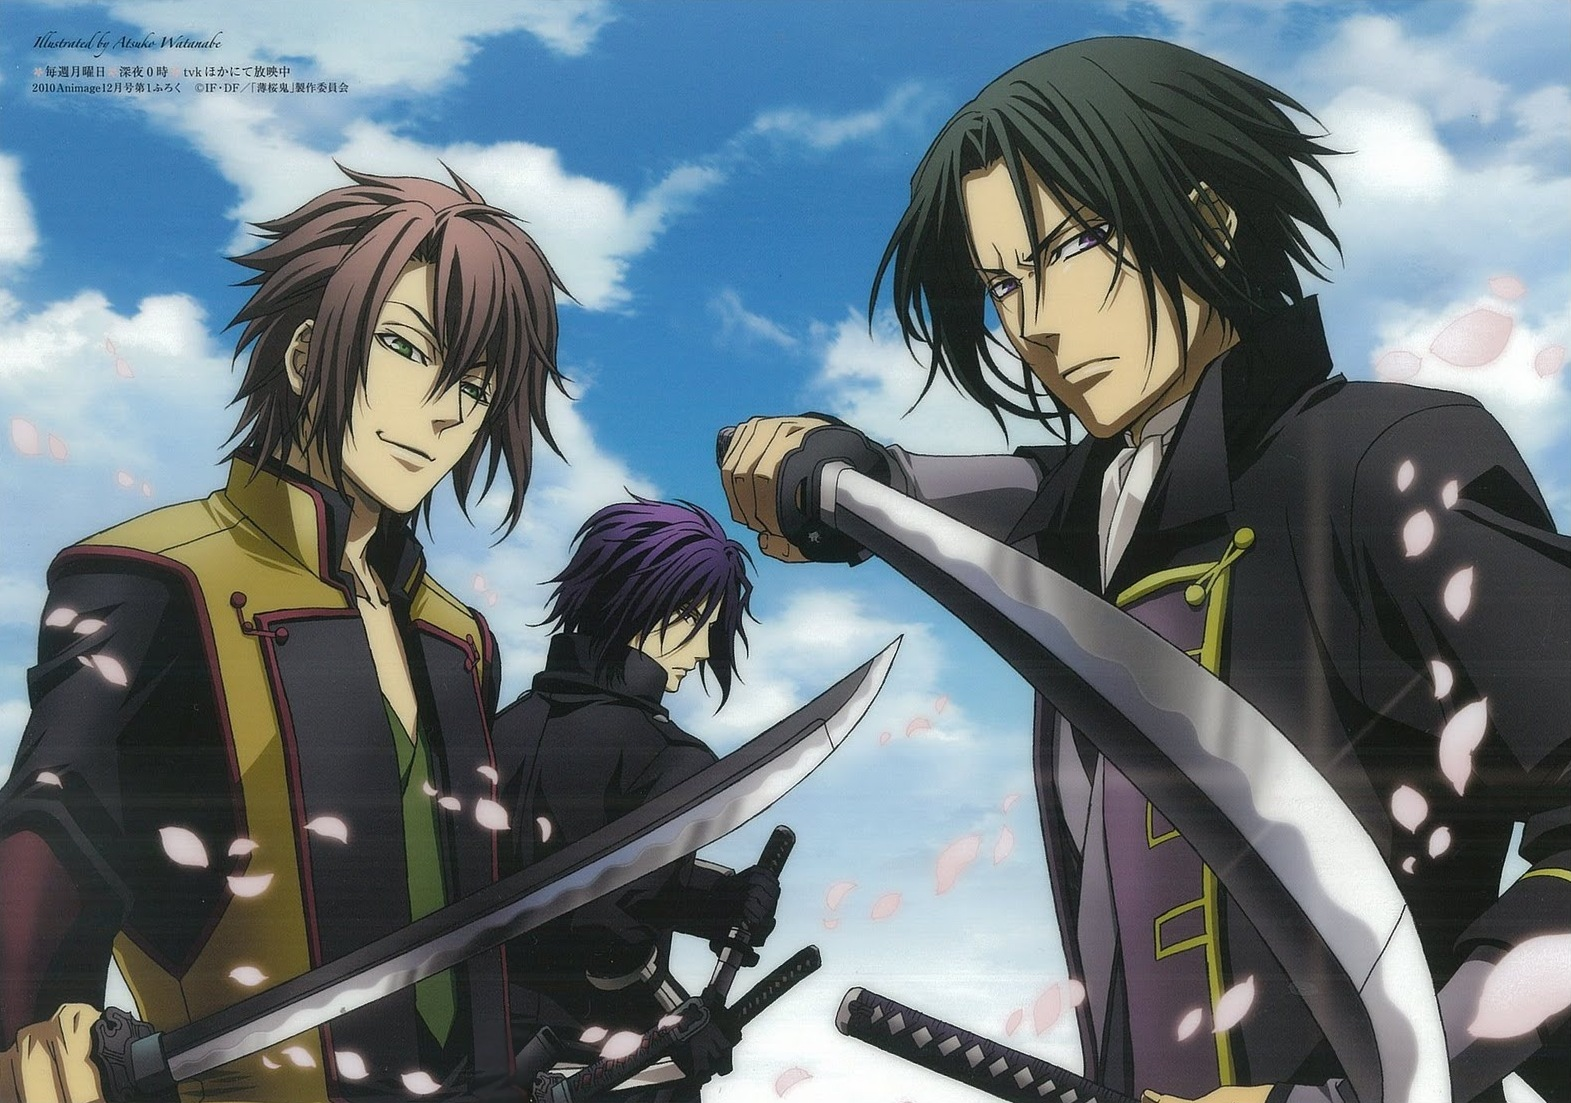 Image Hakuouki Shinsengumi Kitan Full 1091093 1 Fairy Tail